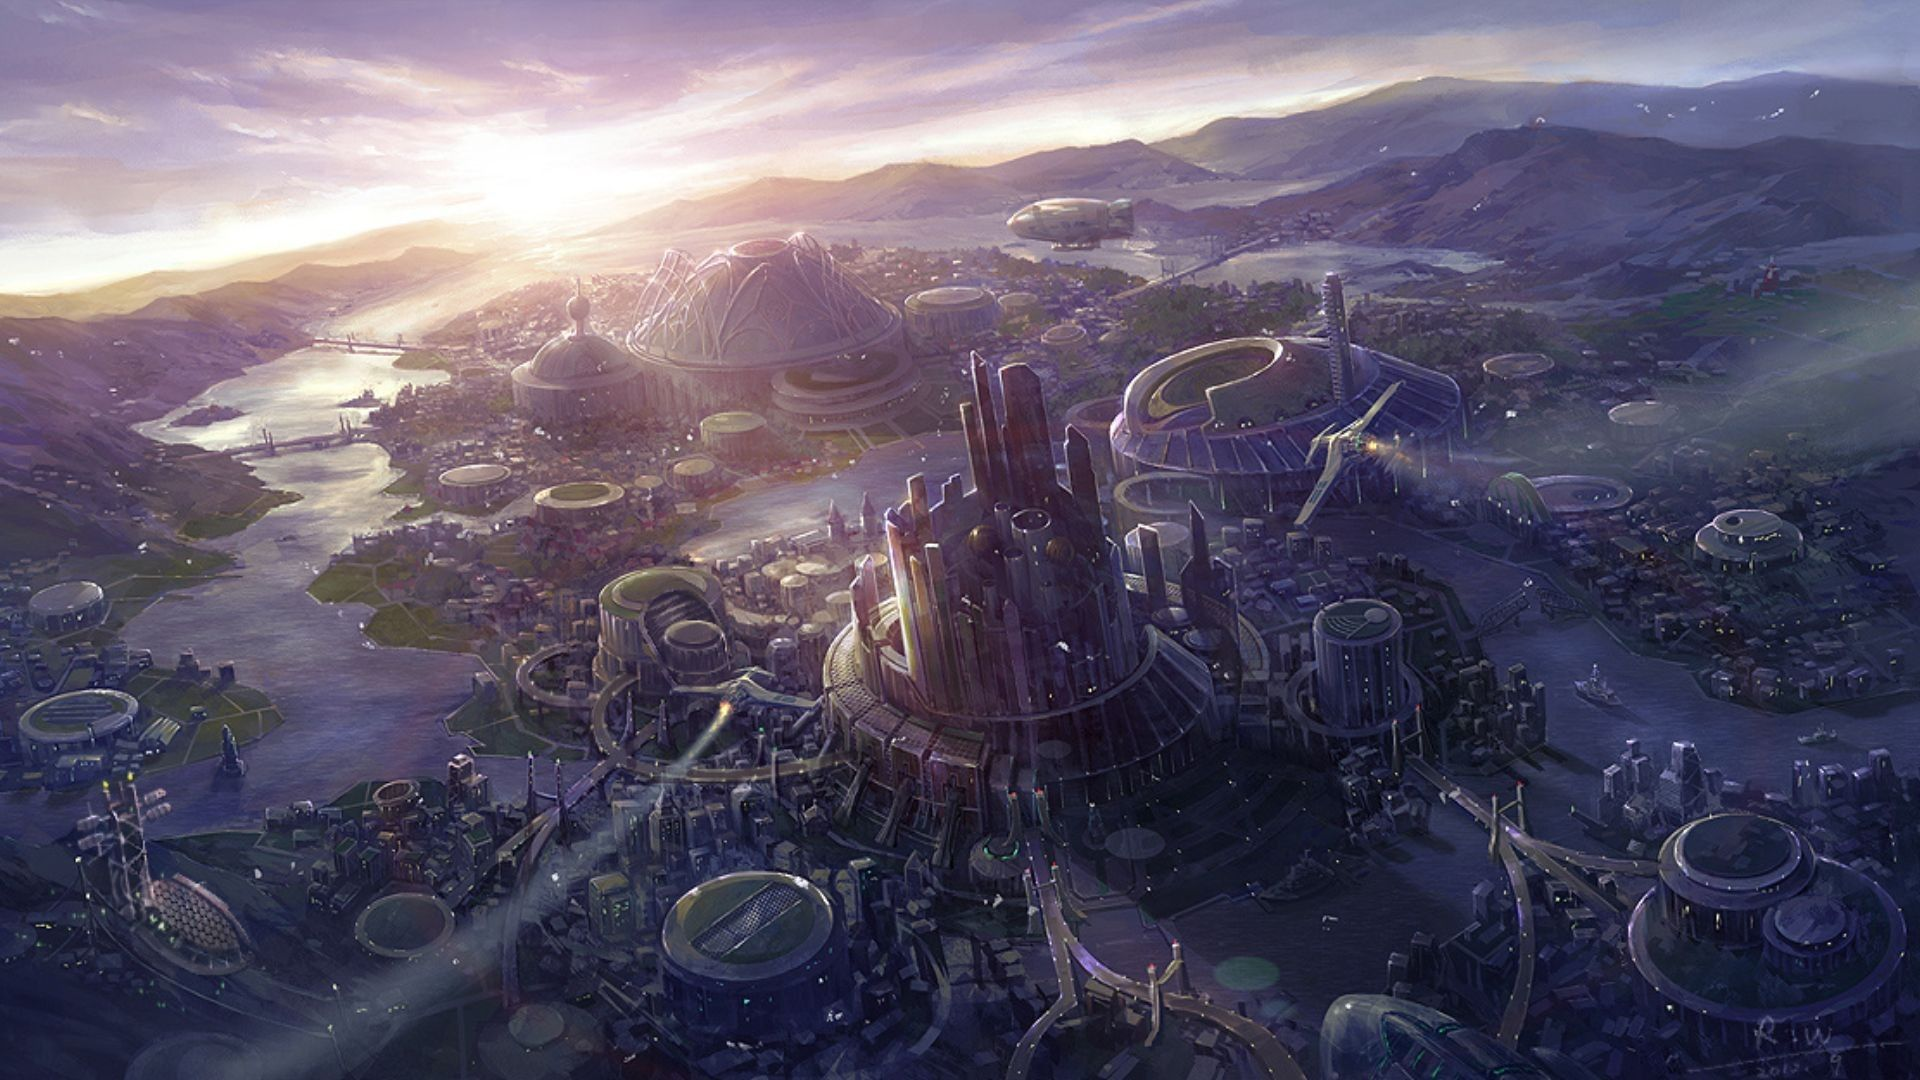 Pin By Saiclone Tempest On Land Concept Art World Concept Art Sci Fi Wallpaper